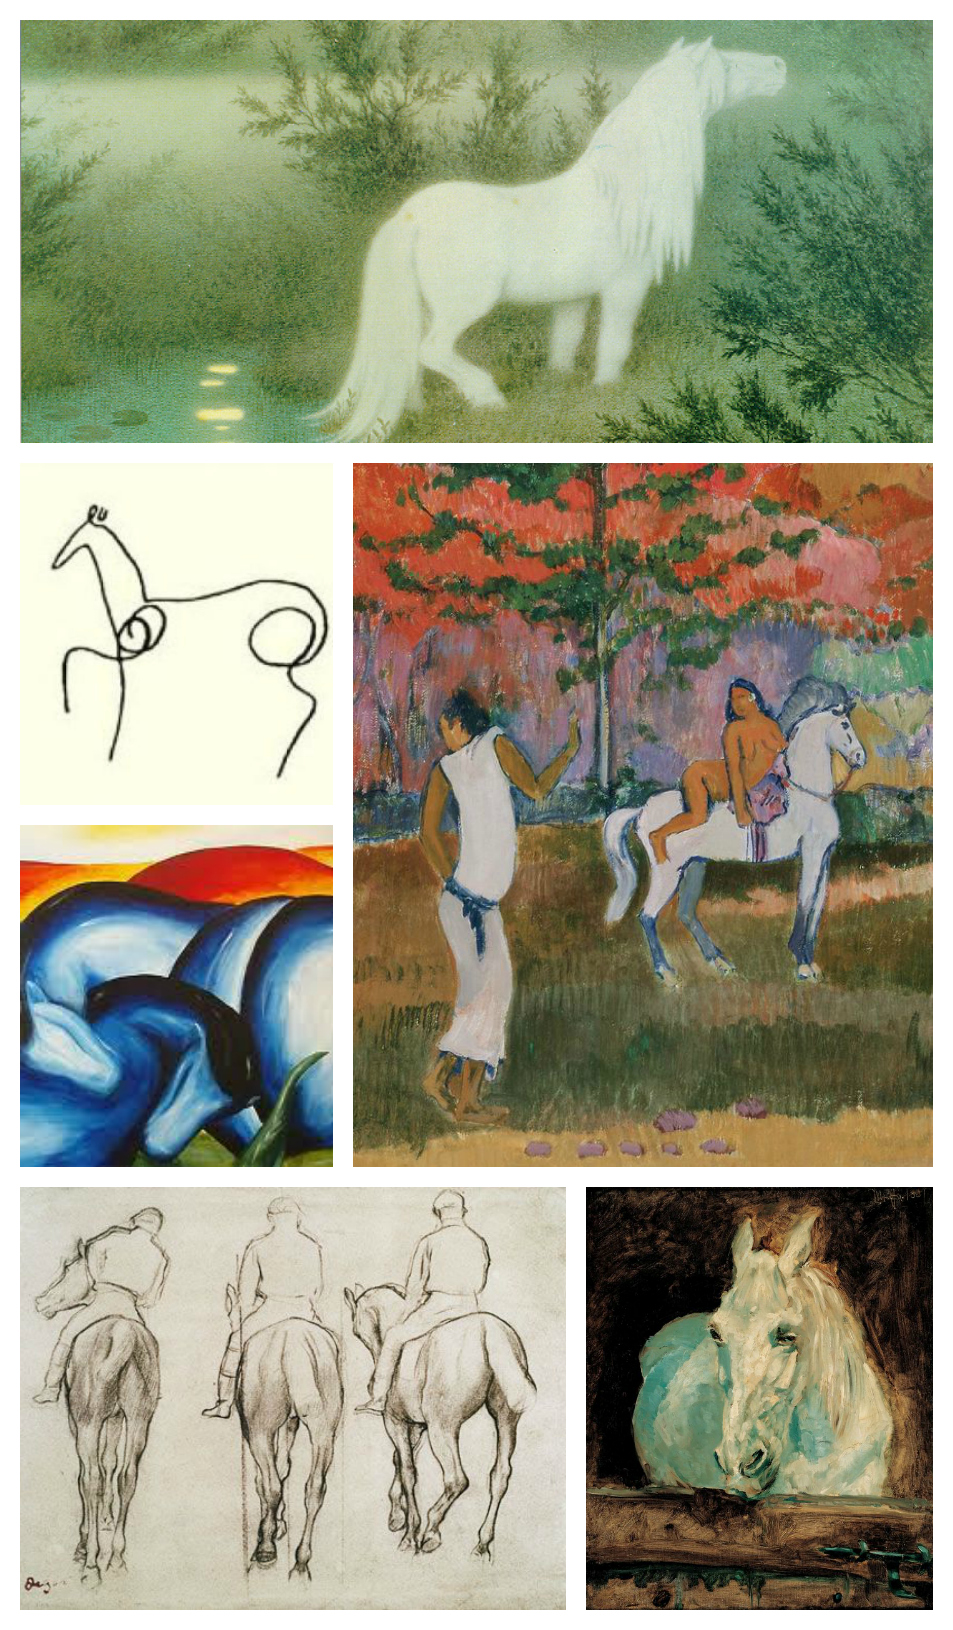 Artists from top: Theodor Kittelsen, Pablo Picasso, Paul Gaugain, Franz Marc, Edgar Degas and Henri de Toulouse Lautrec